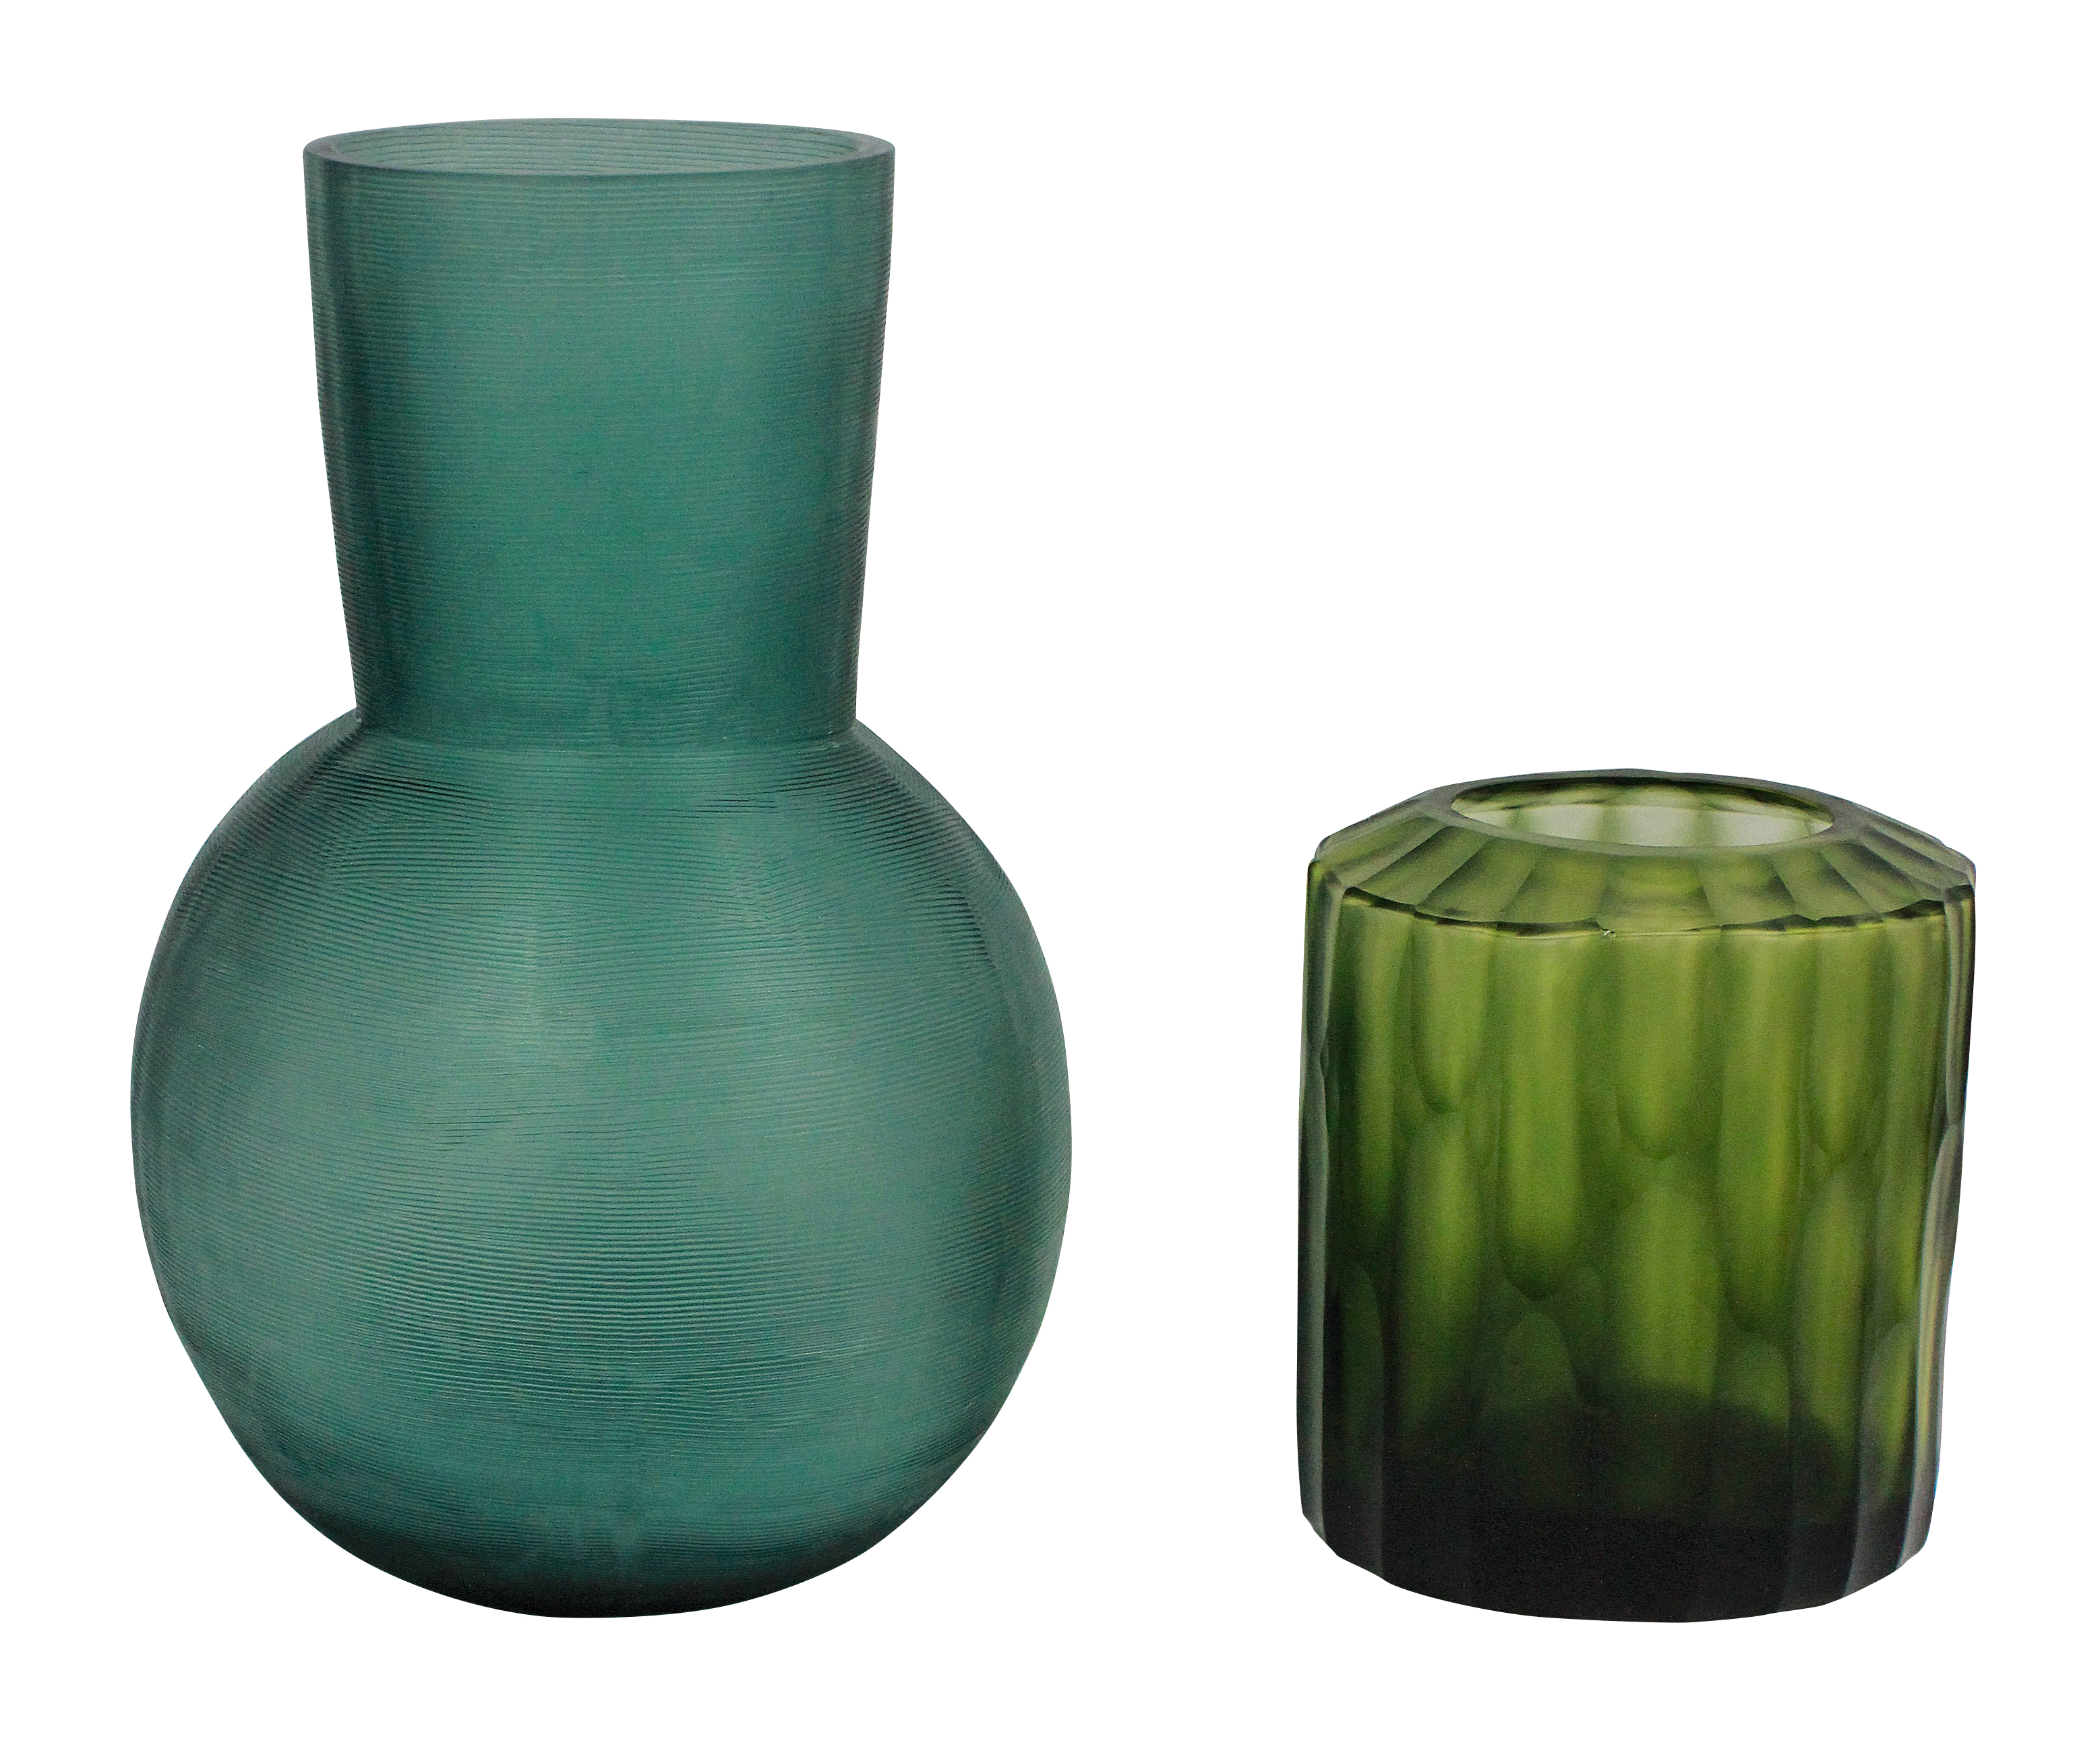 A PAIR OF GUAXS GLASS VASES